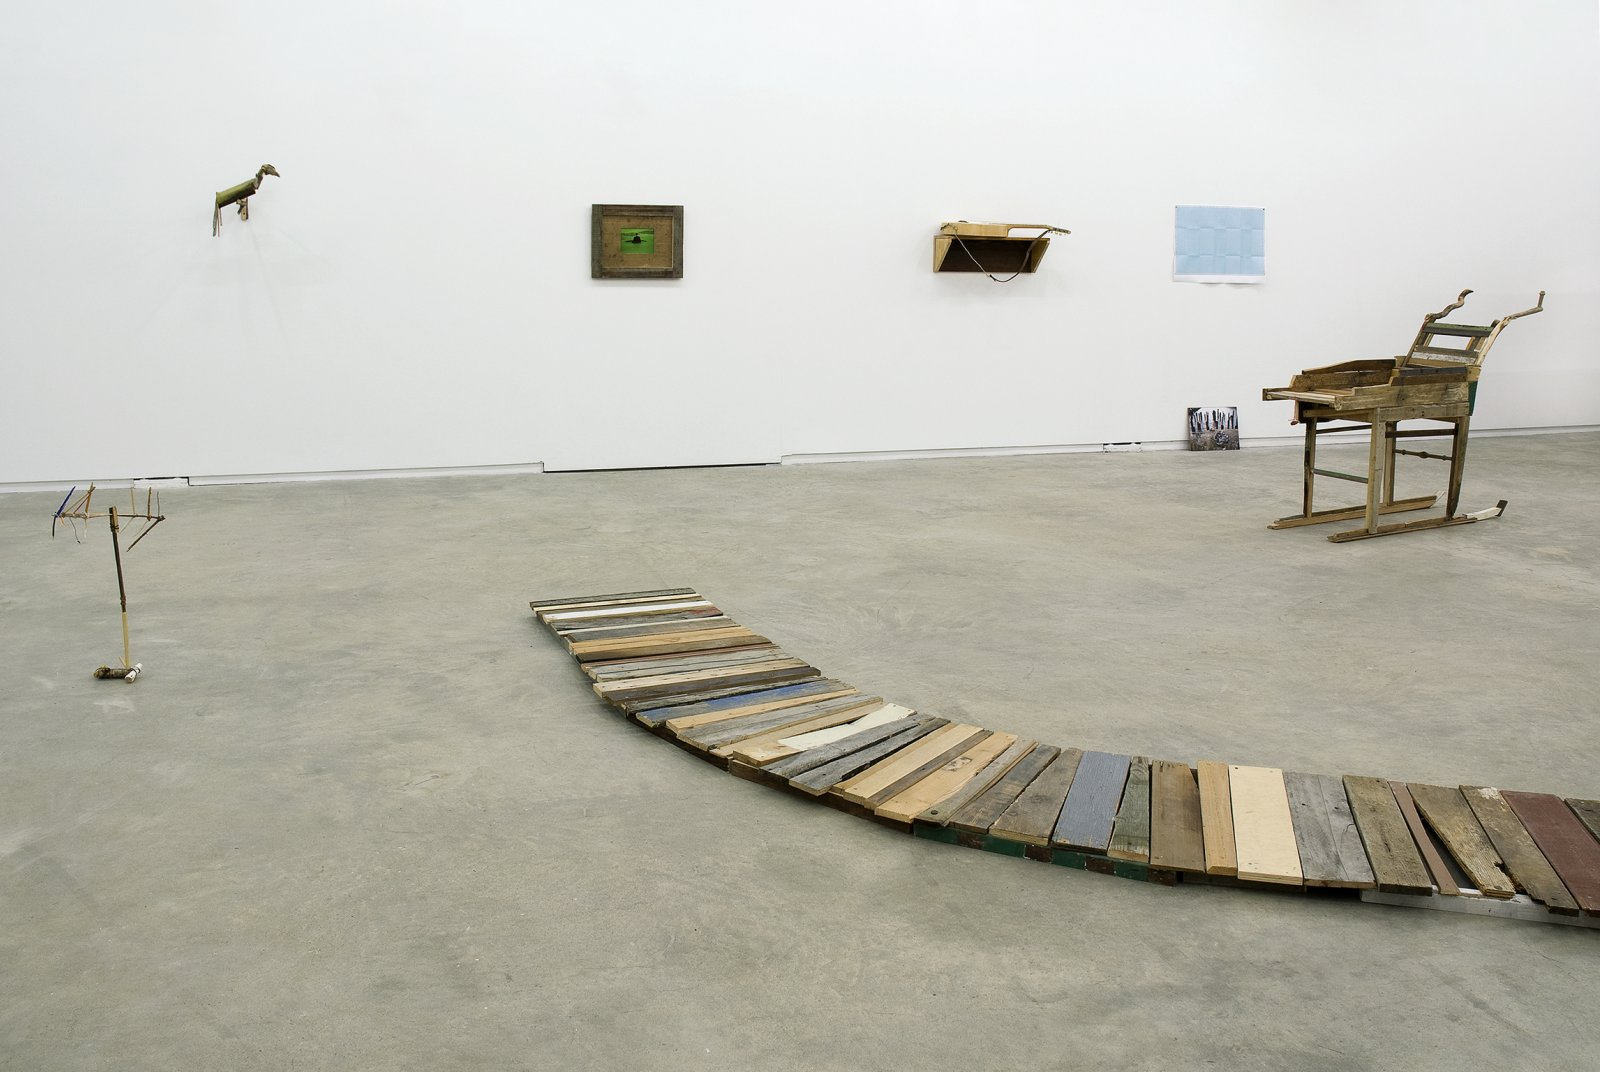 Gareth Moore, installation view, Uncertain Pilgrimage, Catriona Jeffries, 2009 ​​ by Ashes Withyman